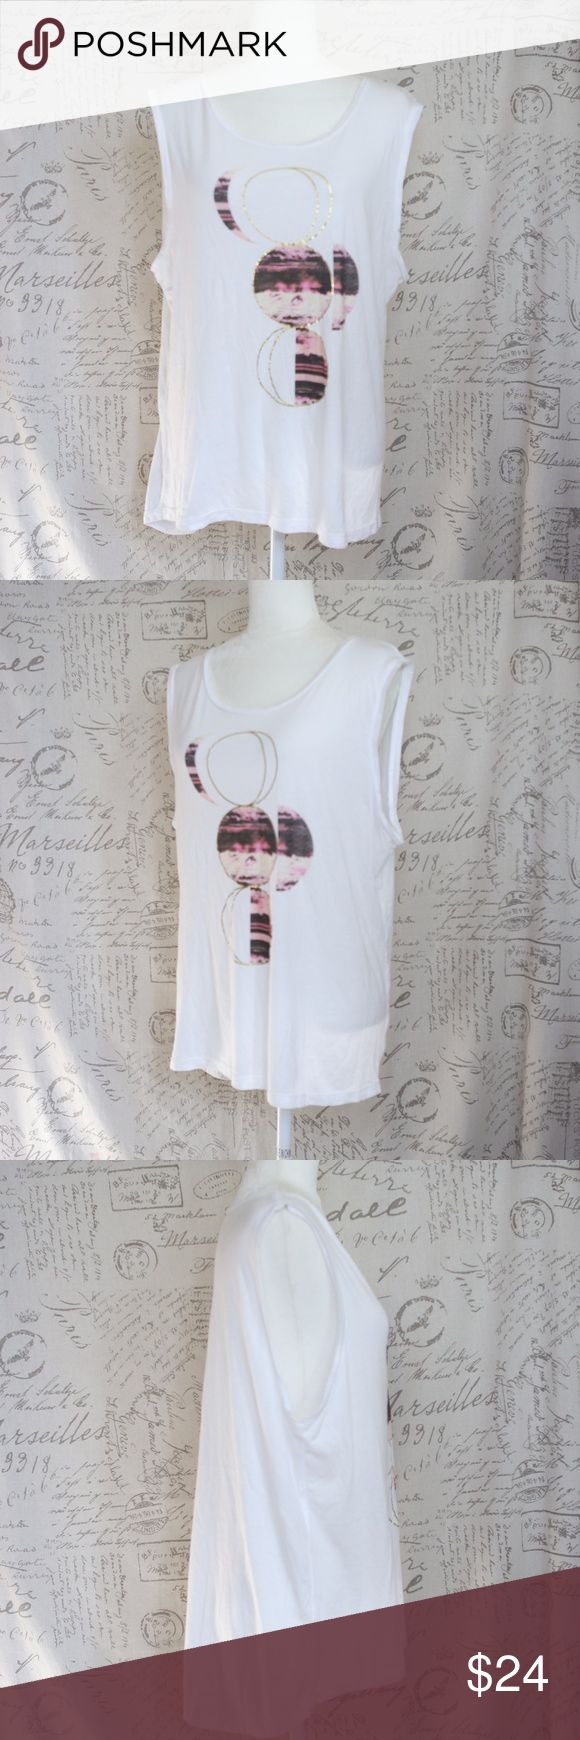 """Lucy Athletic White Graphic Sleeveless Tank Top XL Lucy Athletic Women's White Graphic Sleeveless Tank Shirt  size XL can fit Large due to shrinkage  Measurements taken with garment flat on table. Armpit to armpit: 22"""" Length: 26.5"""" front 28.5"""" back Lucy Tops Tank Tops"""